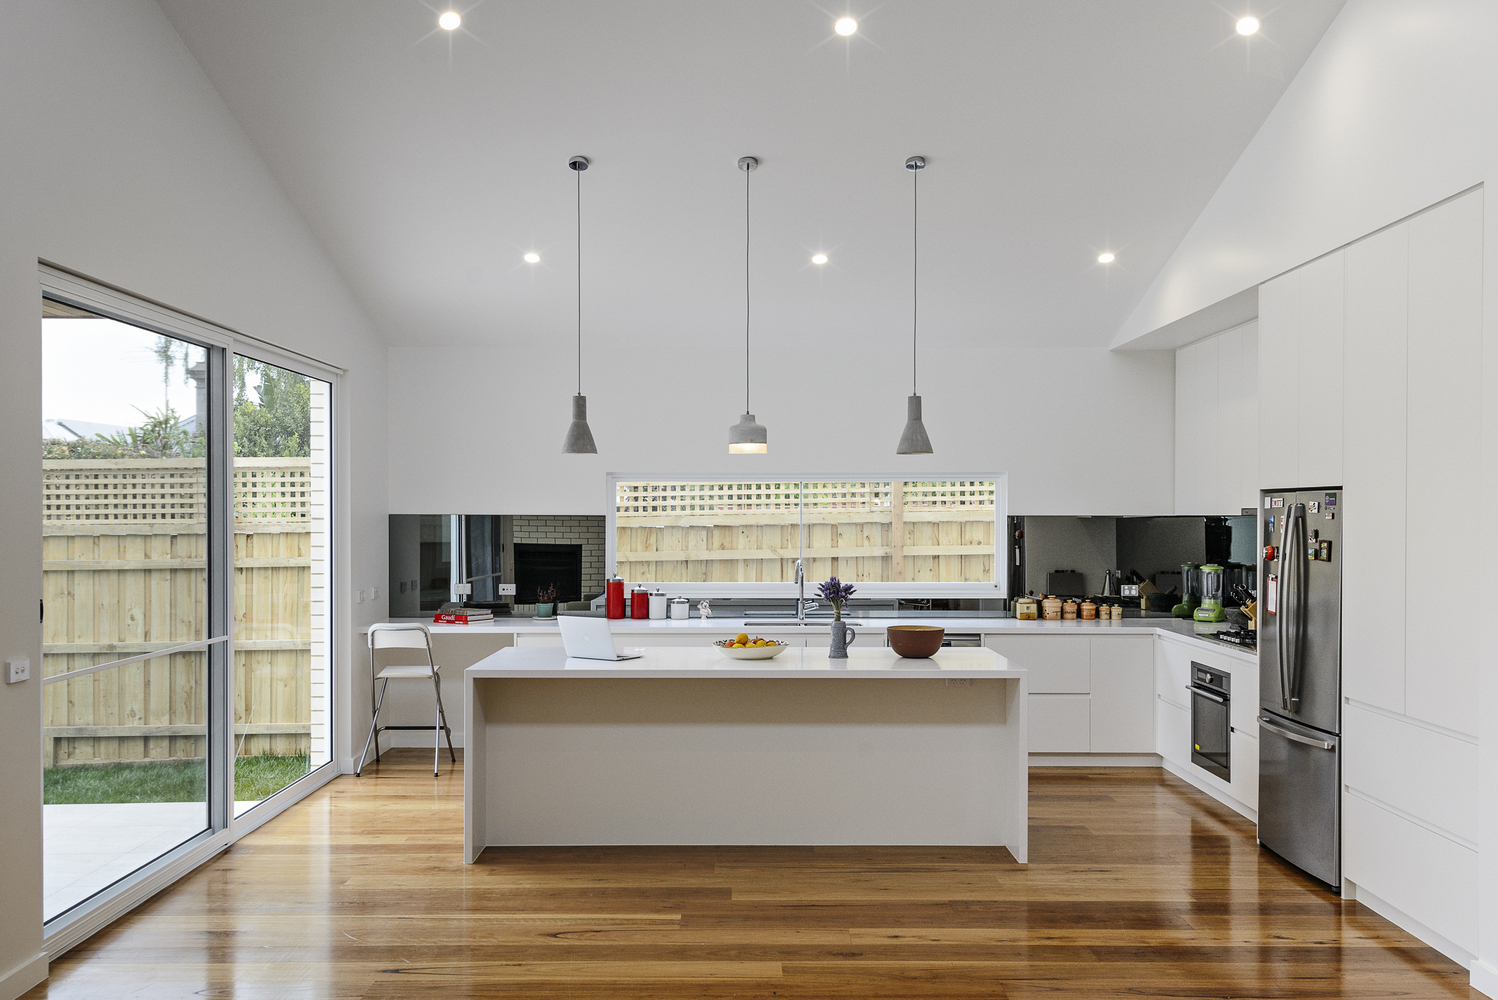 Backyard Extension Takes its Cues from Nearby Buildings and Garages